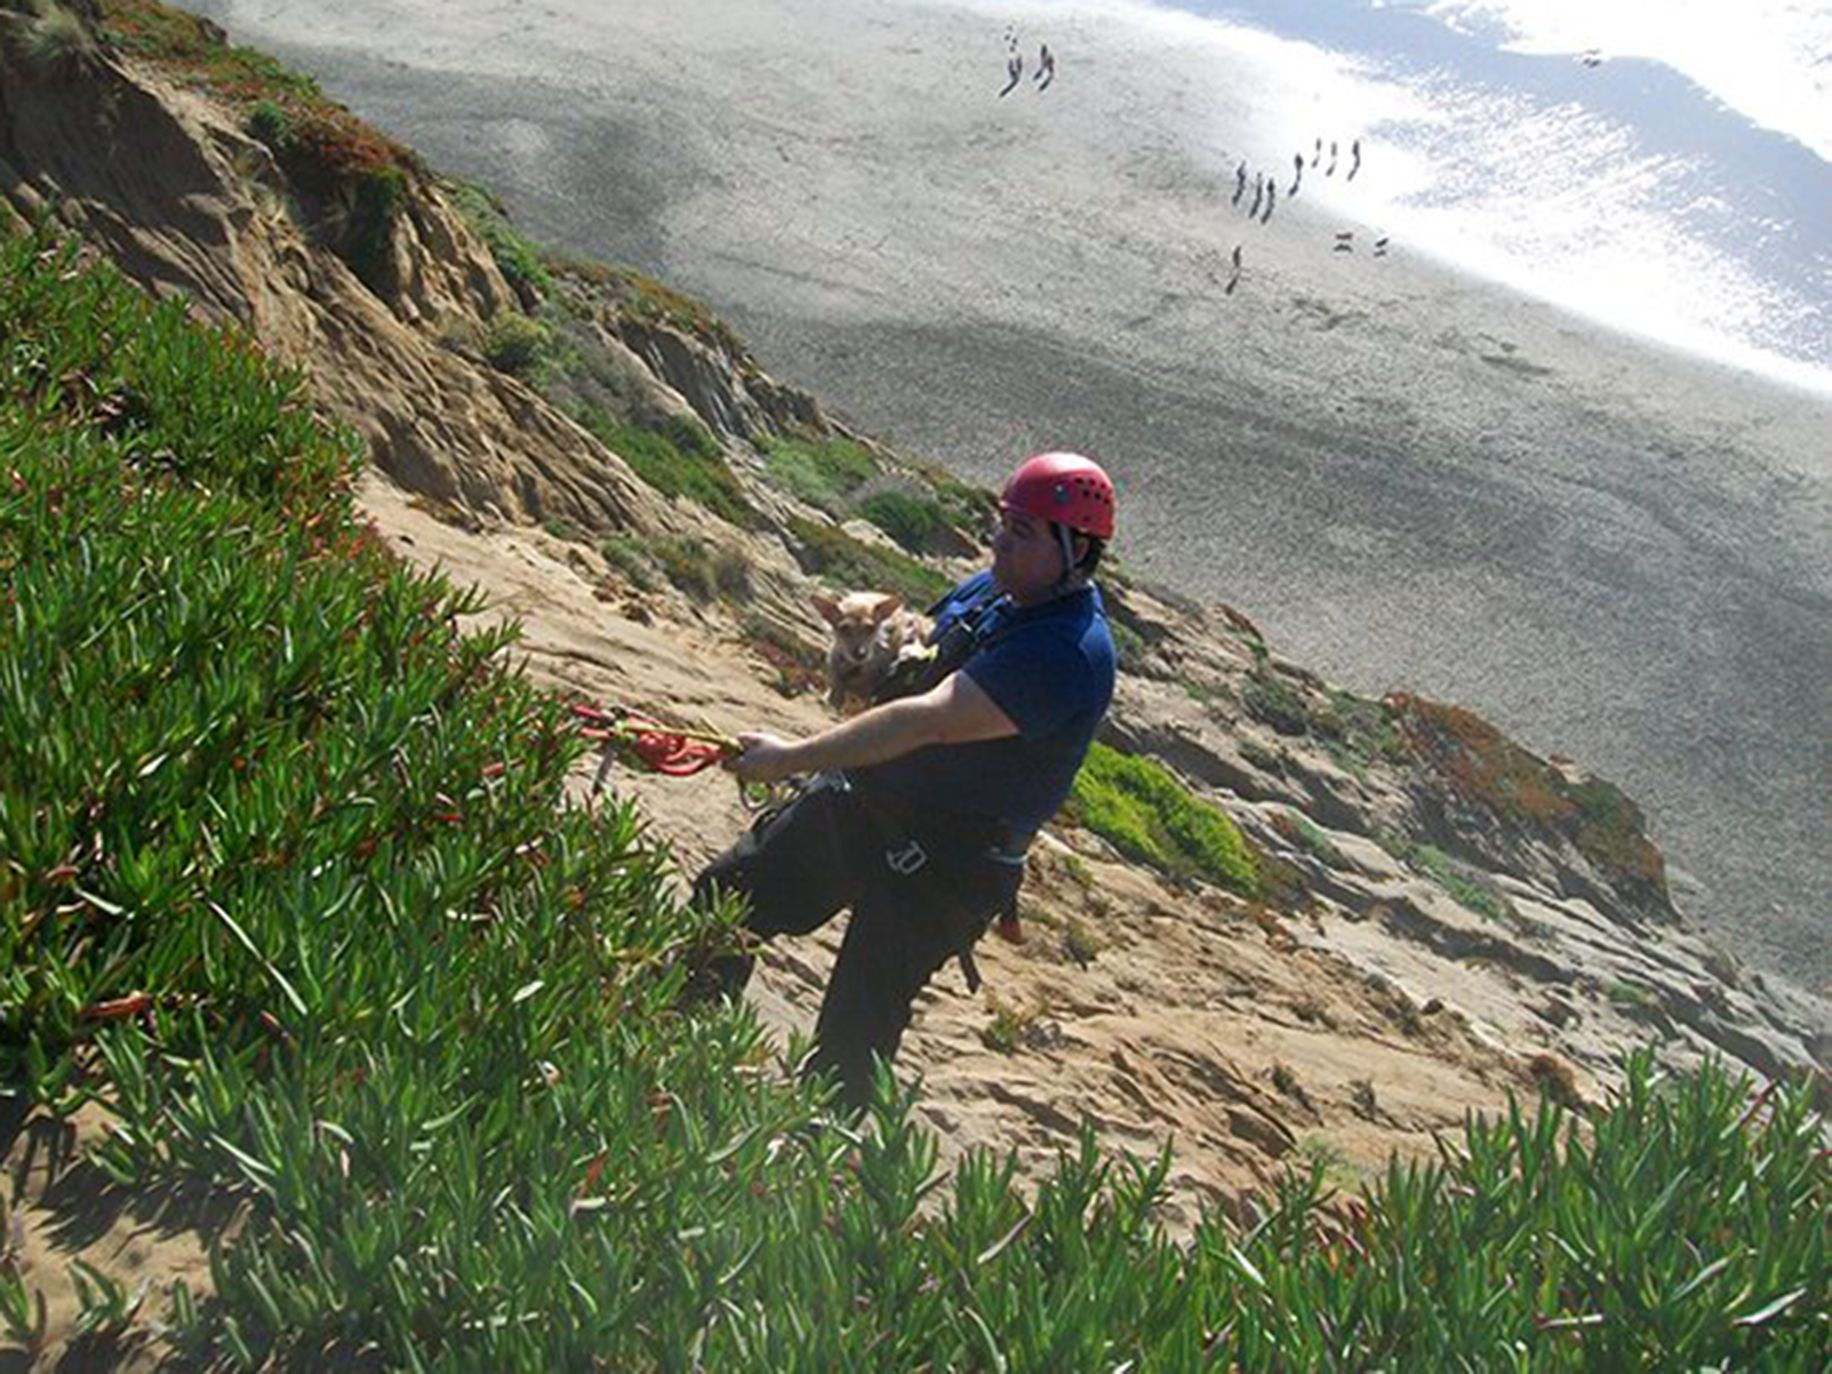 A first responder pulls Foxie from the cliffs of Fort Funston in San Francisco.